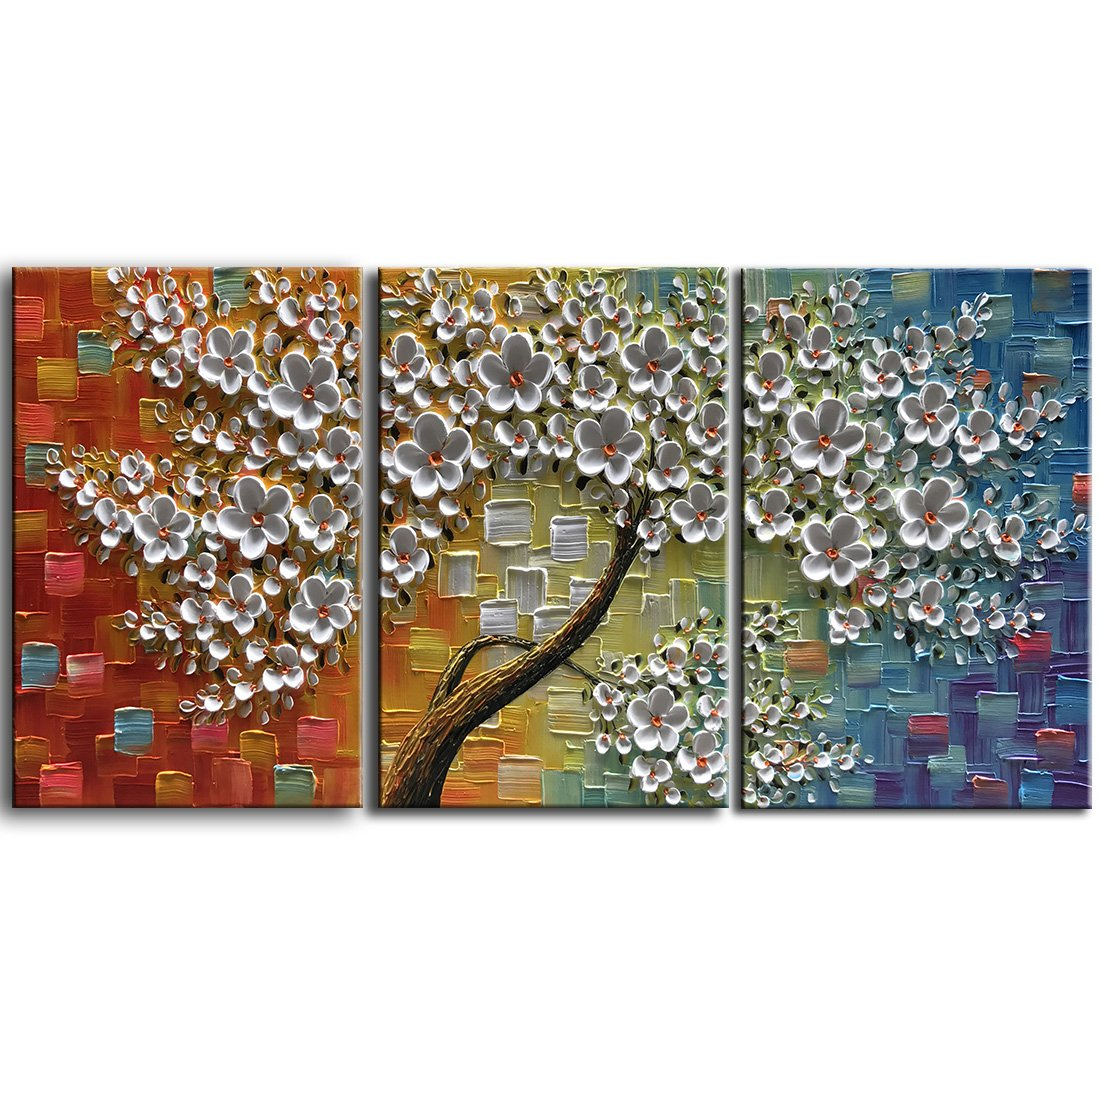 YaSheng Art -3D Abstract Oil Painting On Canvas Texture 3D Flowers Tree Paintings Modern Home Decor Wall Art for living room Framed Ready to Hang 28''x20''inchx3 Piece